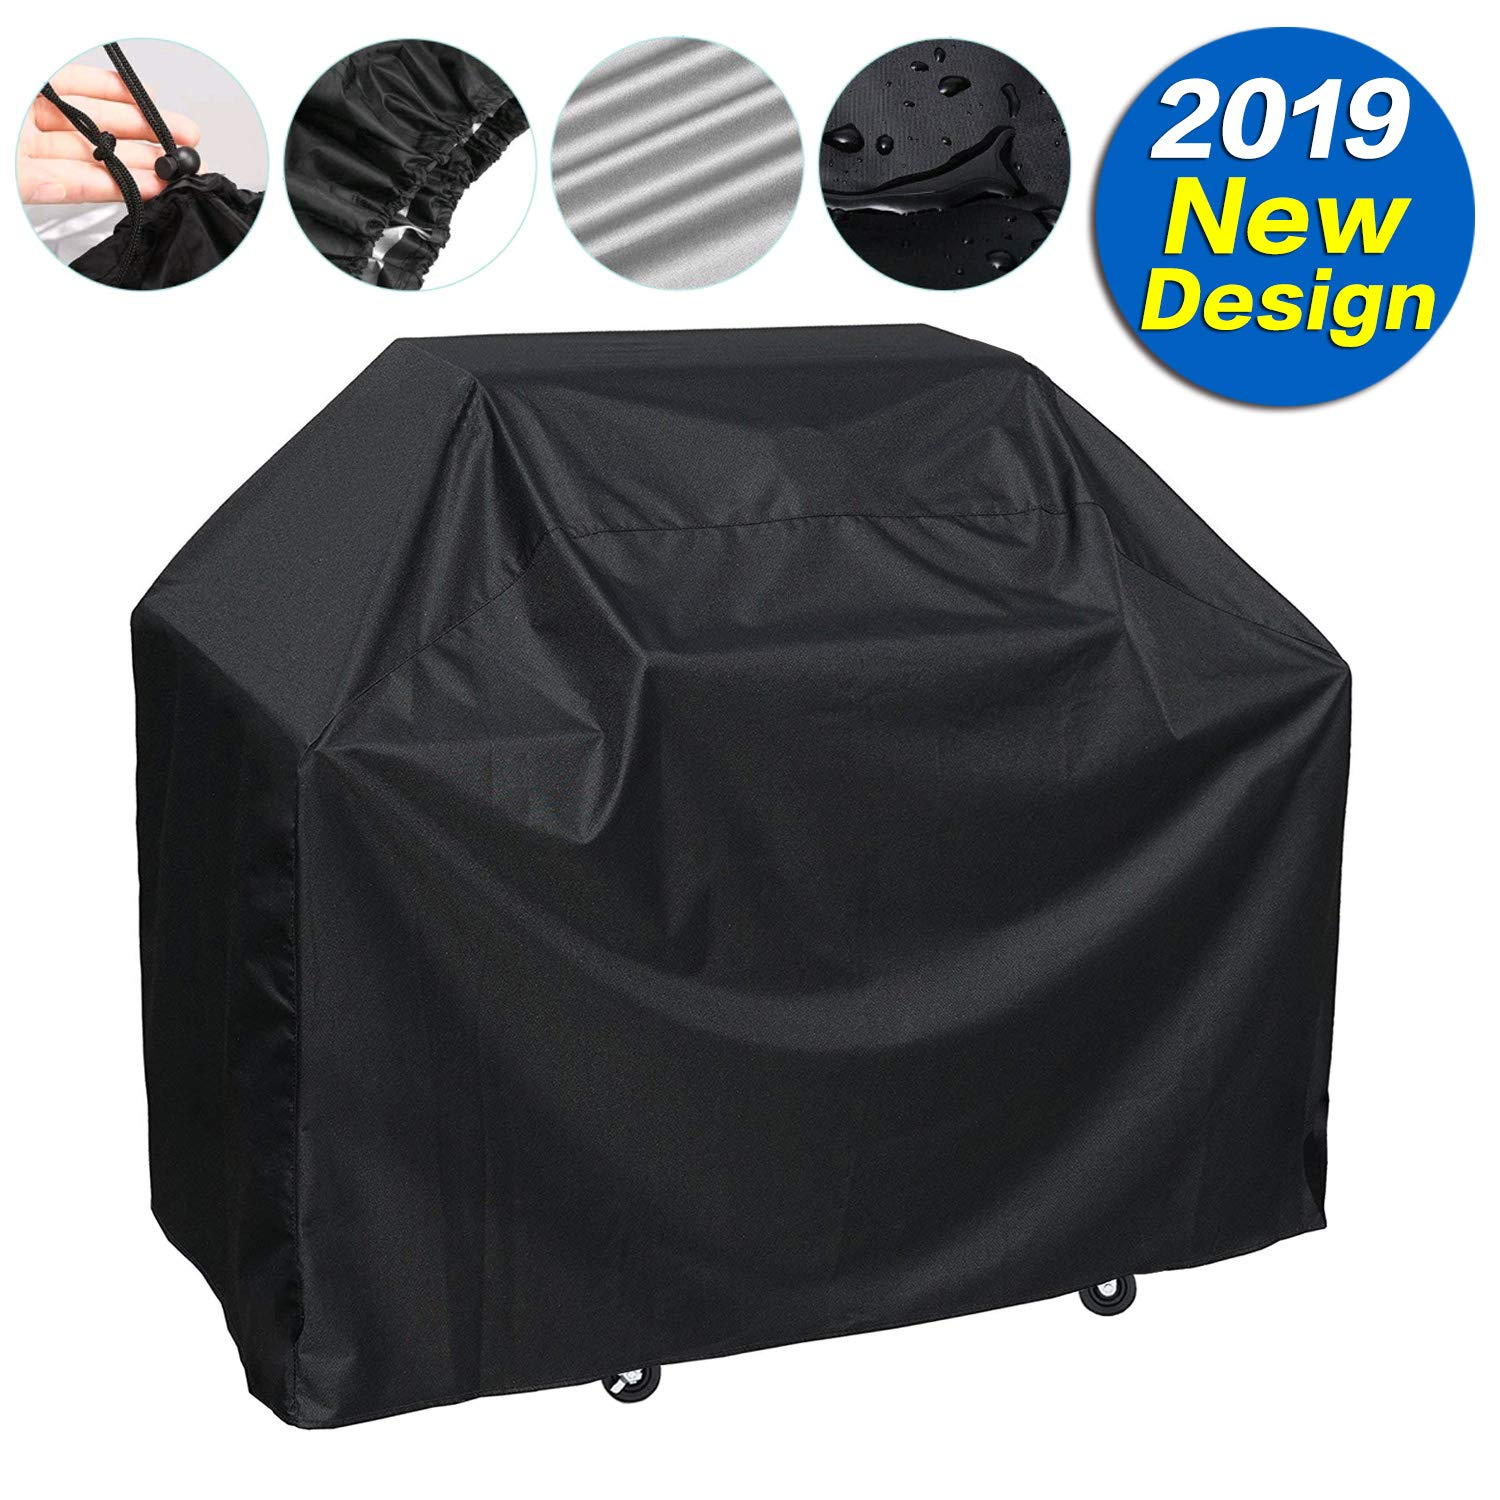 """SARCCH Grill Cover,(58"""" Black) BBQ Special Grill Cover,Waterproof andUV Resistant Material, Durable and Convenient,Fits Grills of Weber Char-Broil Nexgrill Brinkmann and More"""